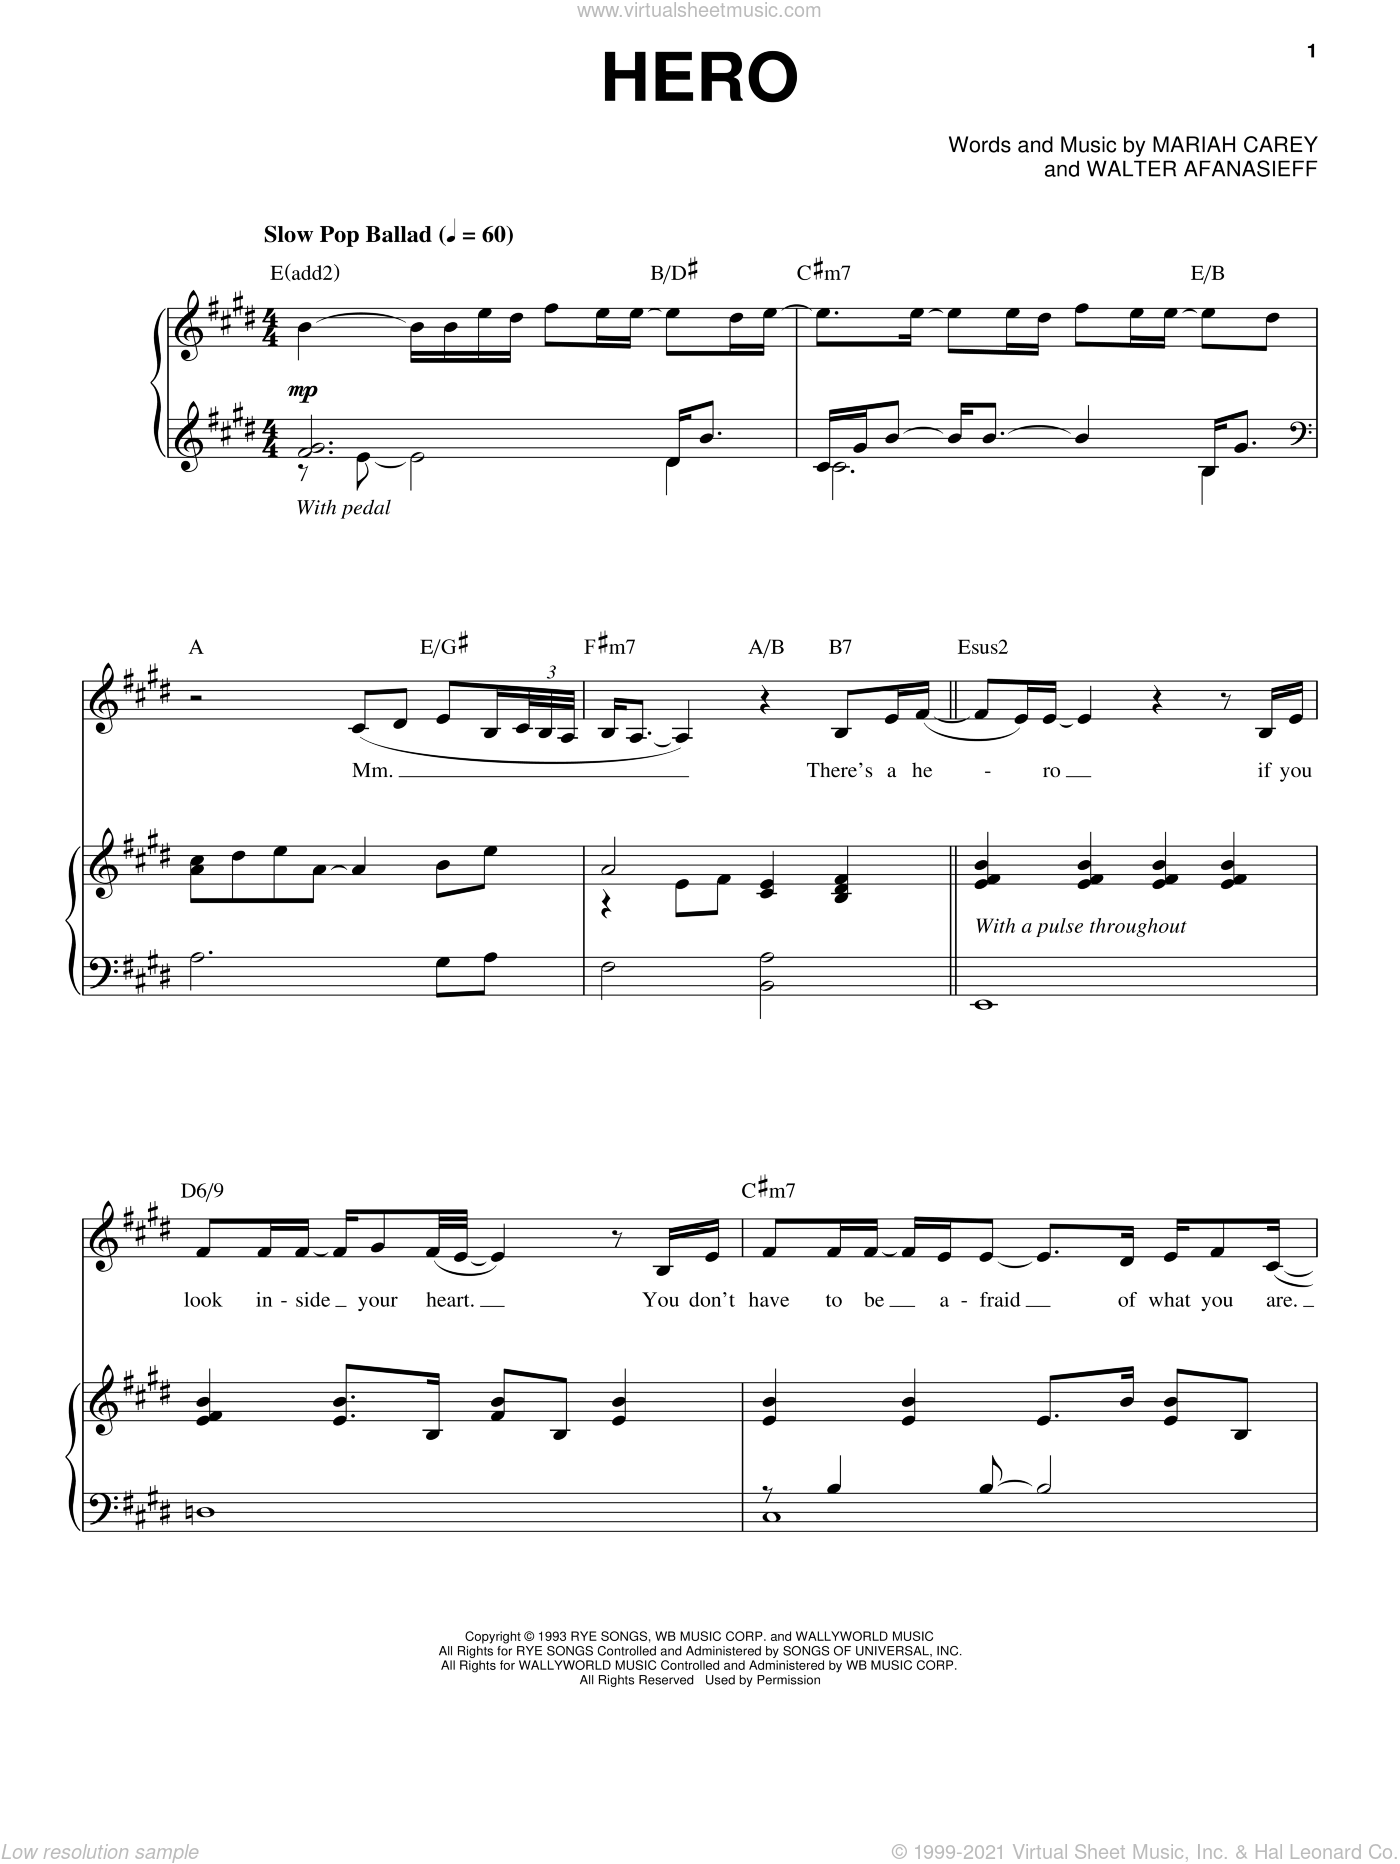 Hero sheet music for voice, piano or guitar by Mariah Carey and Walter Afanasieff, intermediate skill level